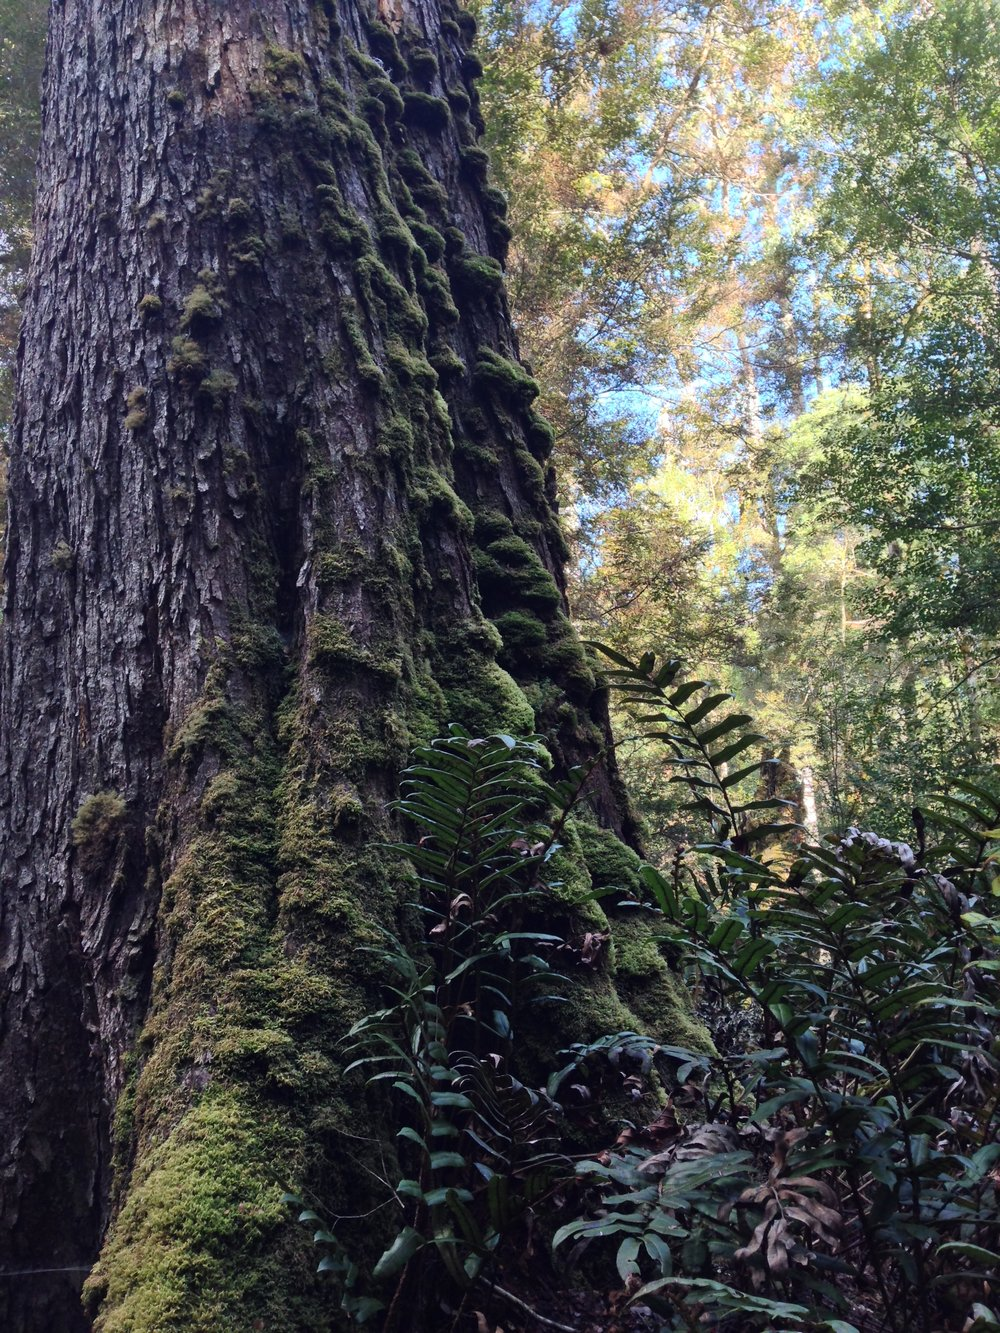 Temperate rainforest of the Tarkine (one of four full-day sightseeing excursions included in the tour).